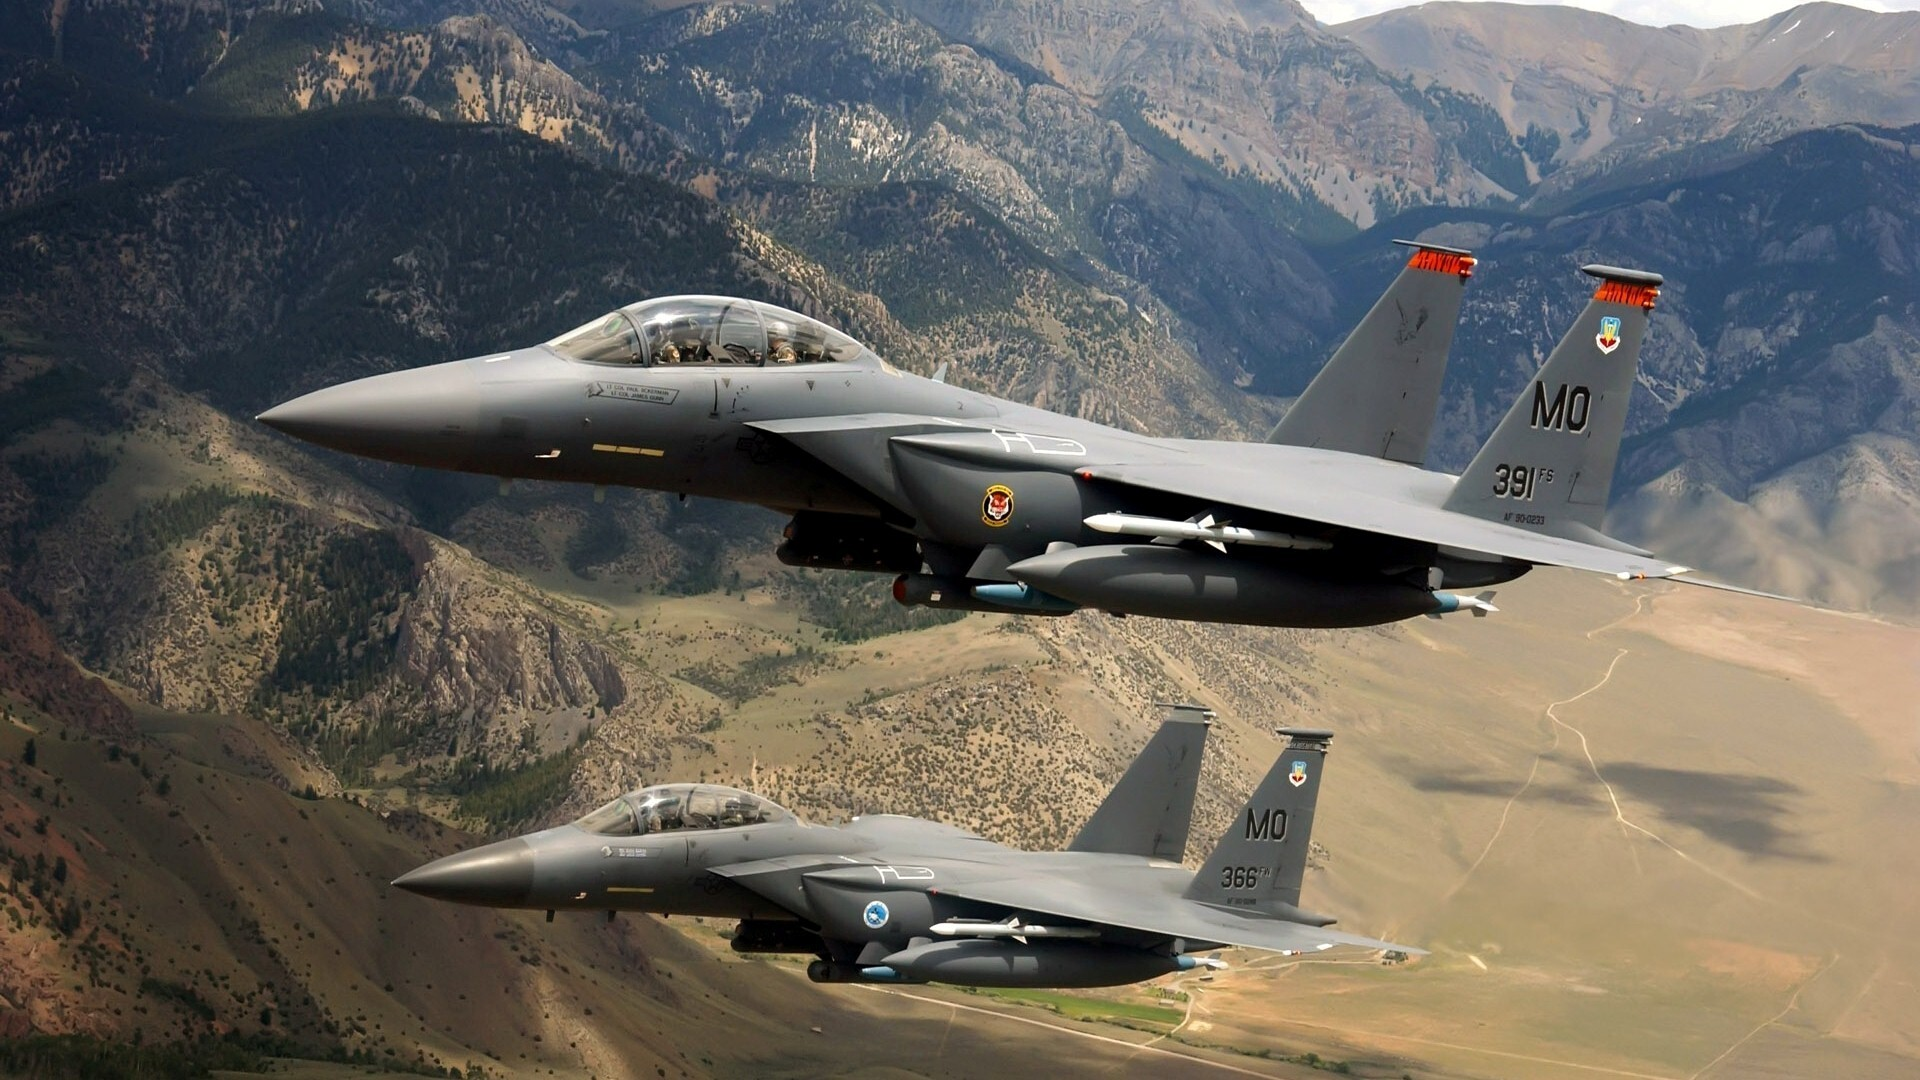 mo 391 fighter plane hd wallpaper | hd wallpapers